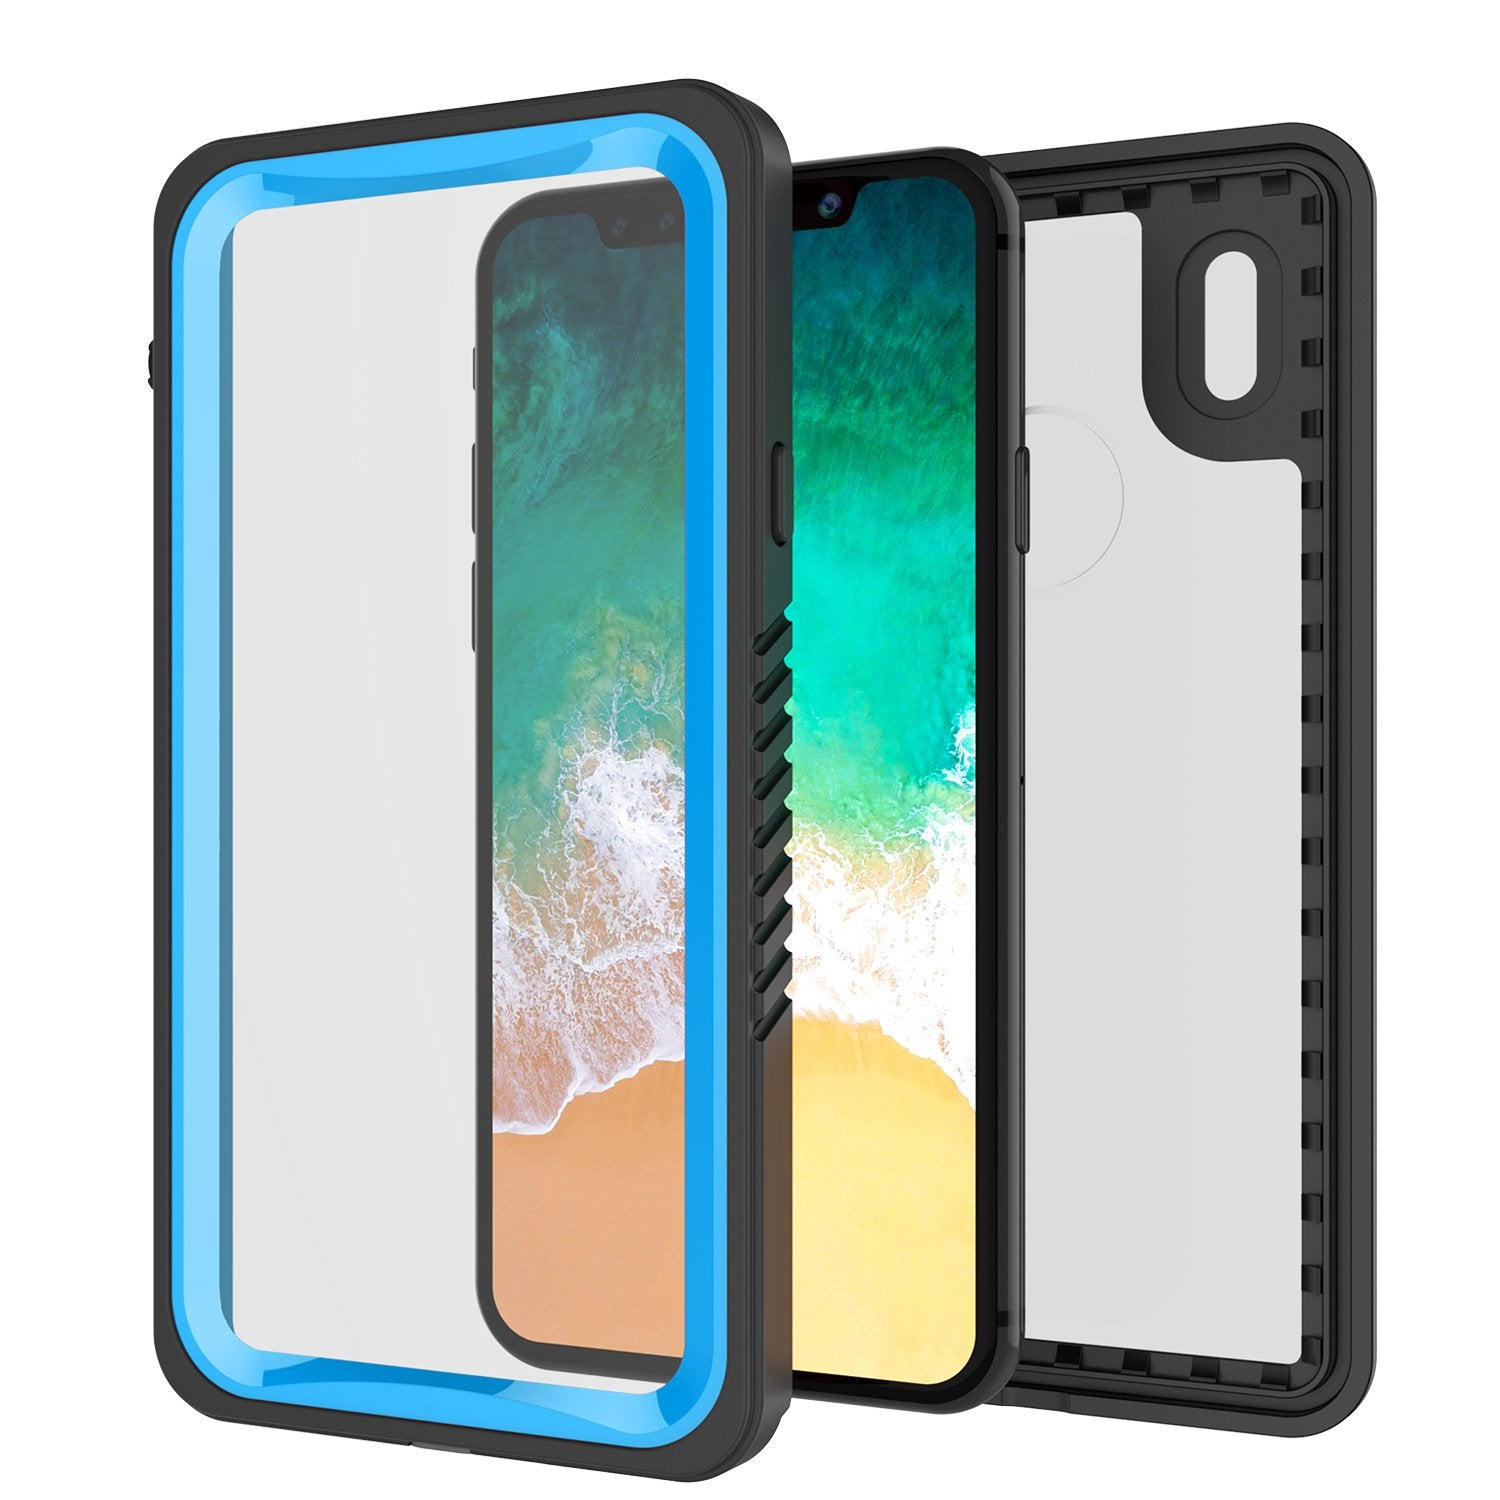 iPhone X Case, Punkcase [Extreme Series] [Slim Fit] [IP68 Certified] [Shockproof] [Snowproof] [Dirproof] Armor Cover W/ Built In Screen Protector for Apple iPhone 10 [LIGHT BLUE]